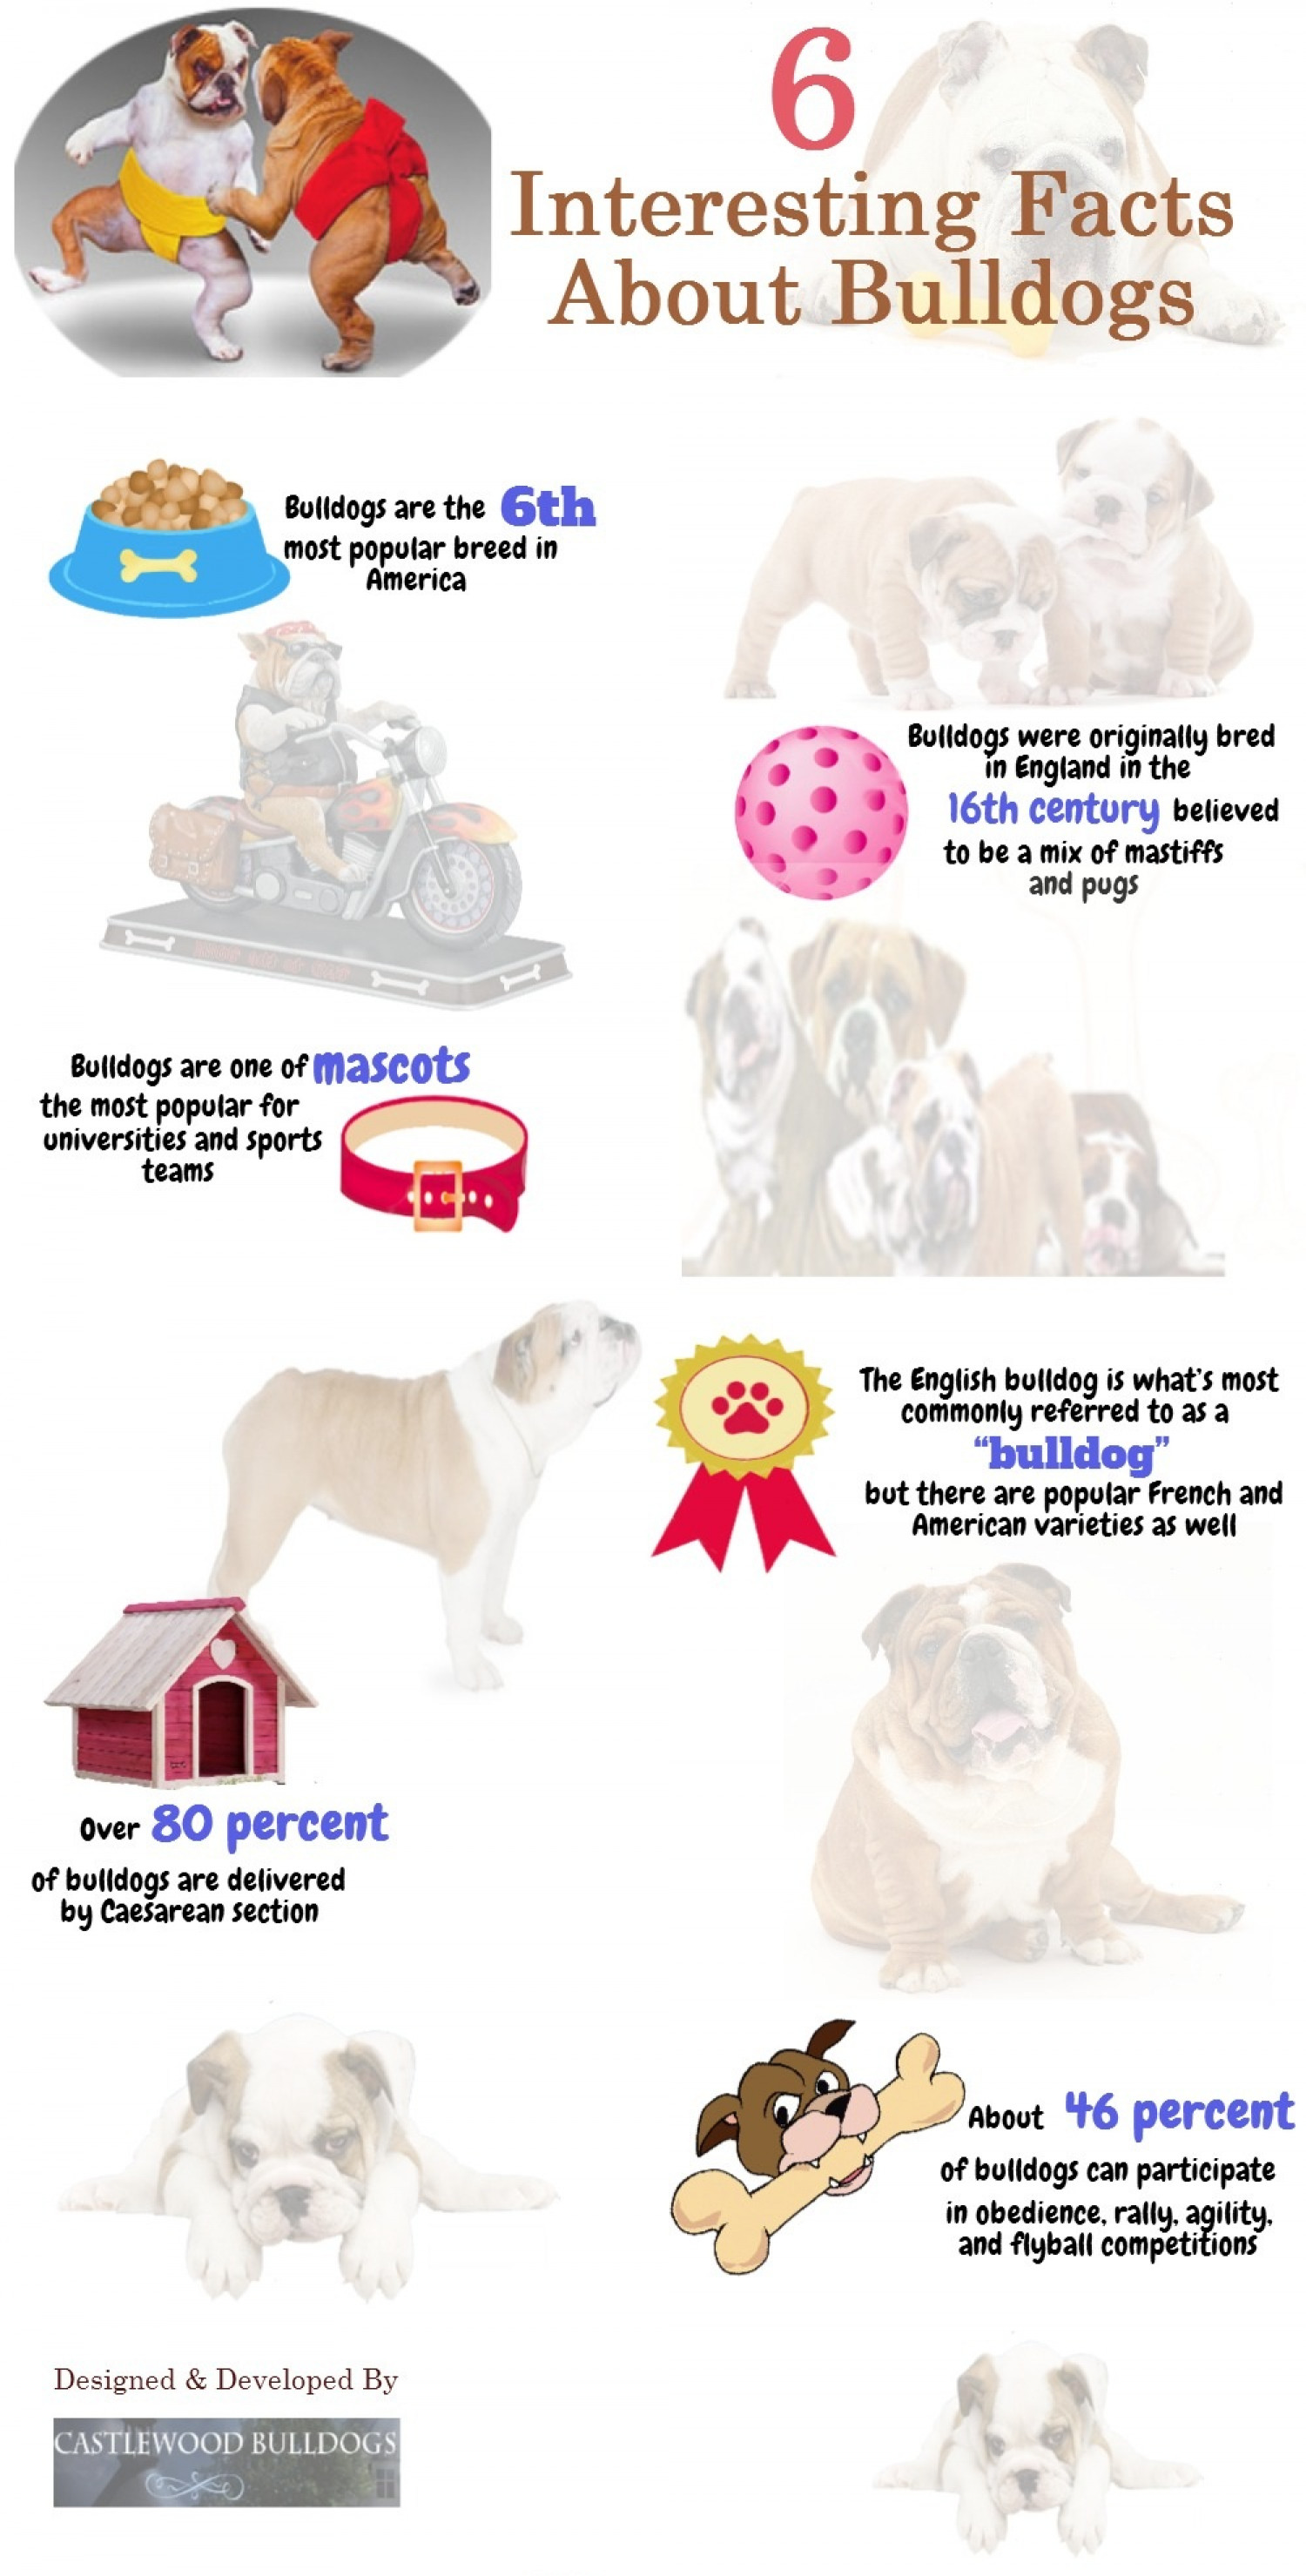 6 Interesting Facts About Bulldogs Infographic